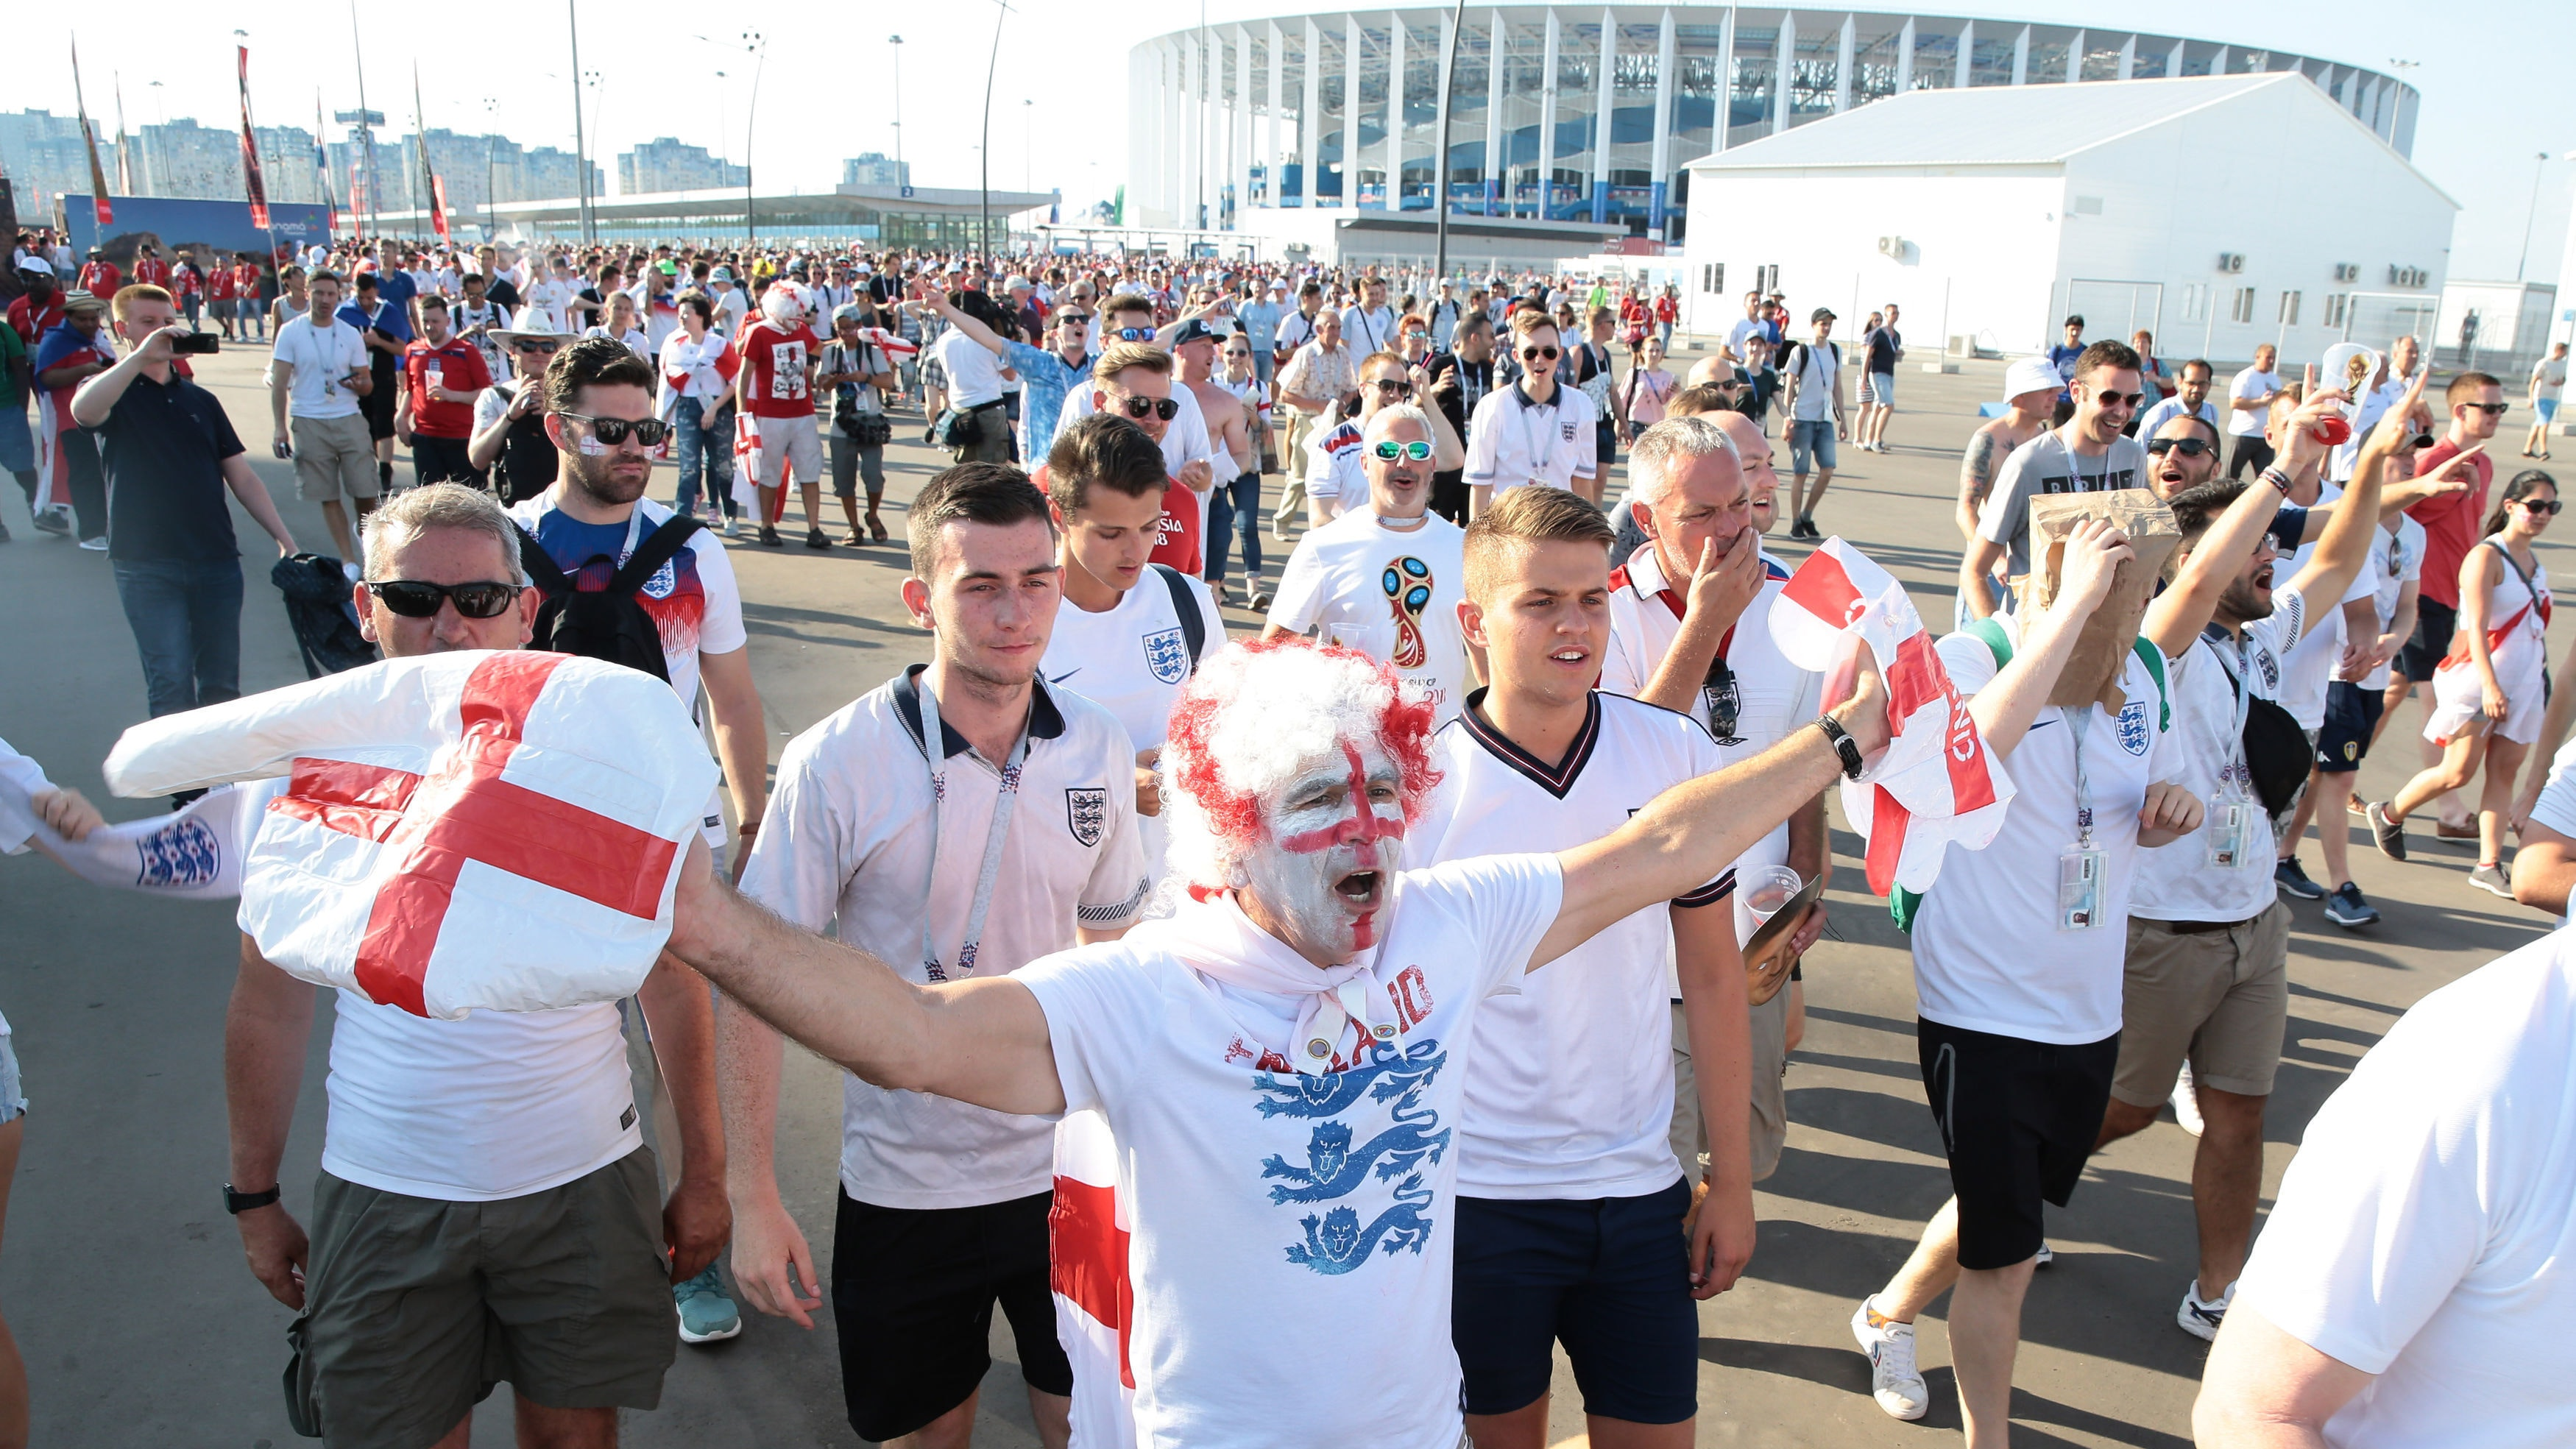 FIFA World Cup: Fans battle it out ahead Croatia vs England semifinal today